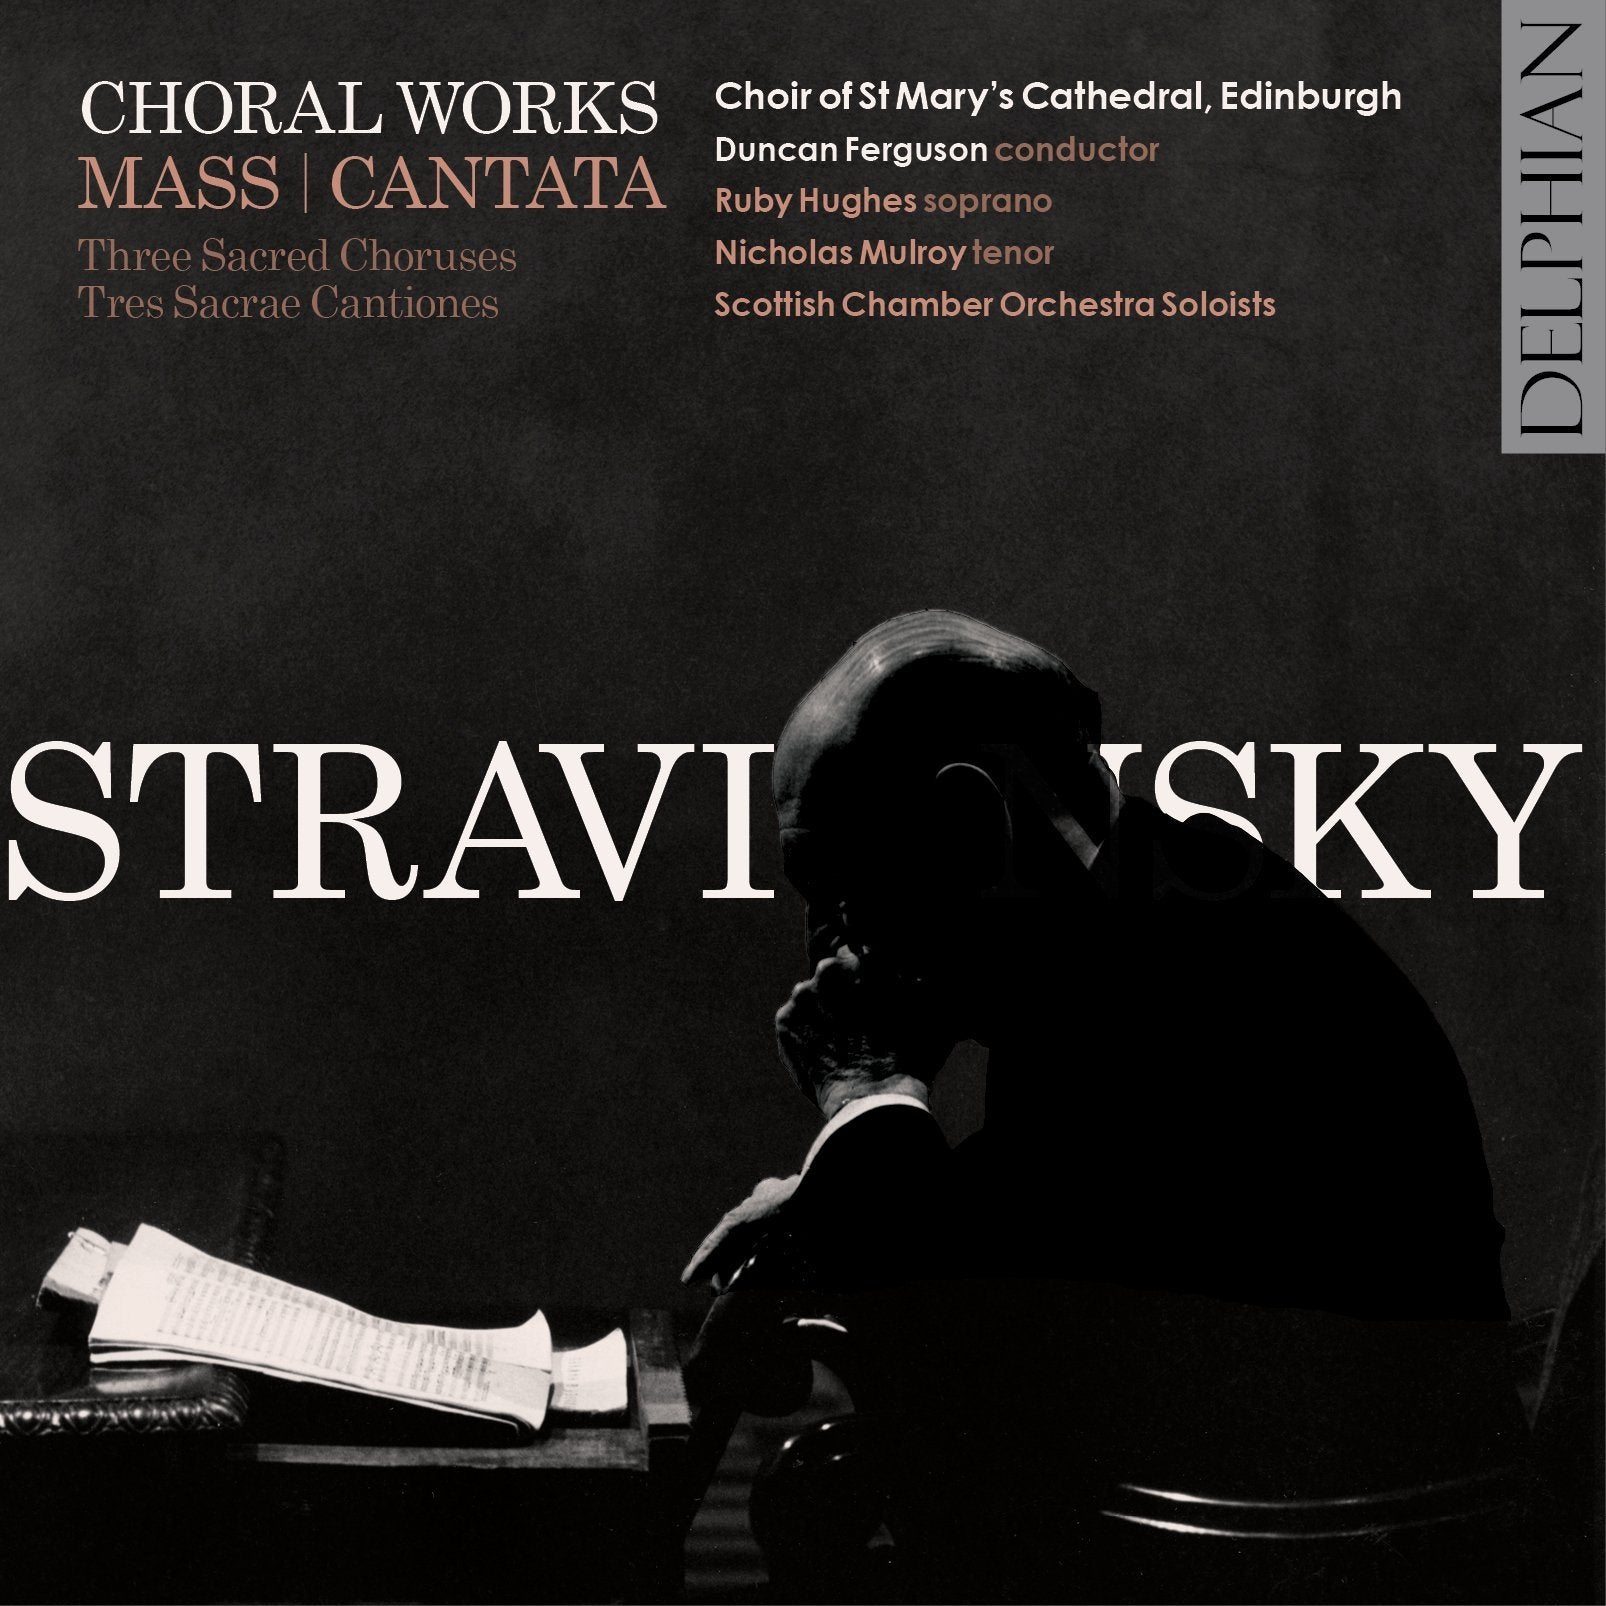 Stravinsky: Choral Works CD Delphian Records